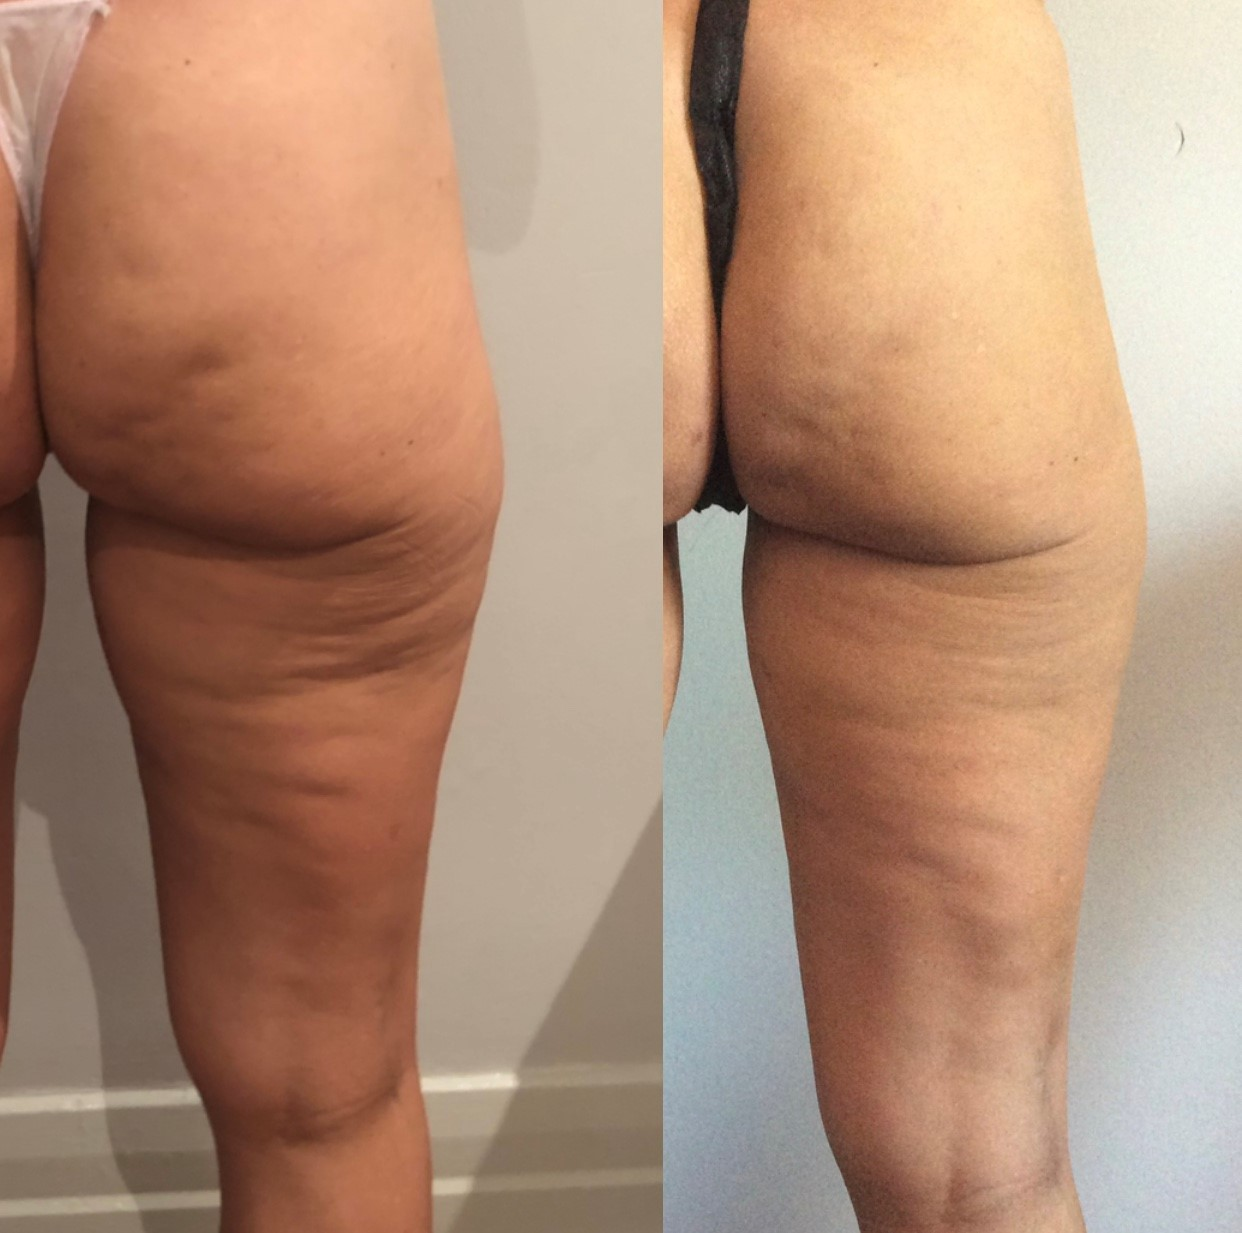 LPG Endermologie - Reducing Cellulite